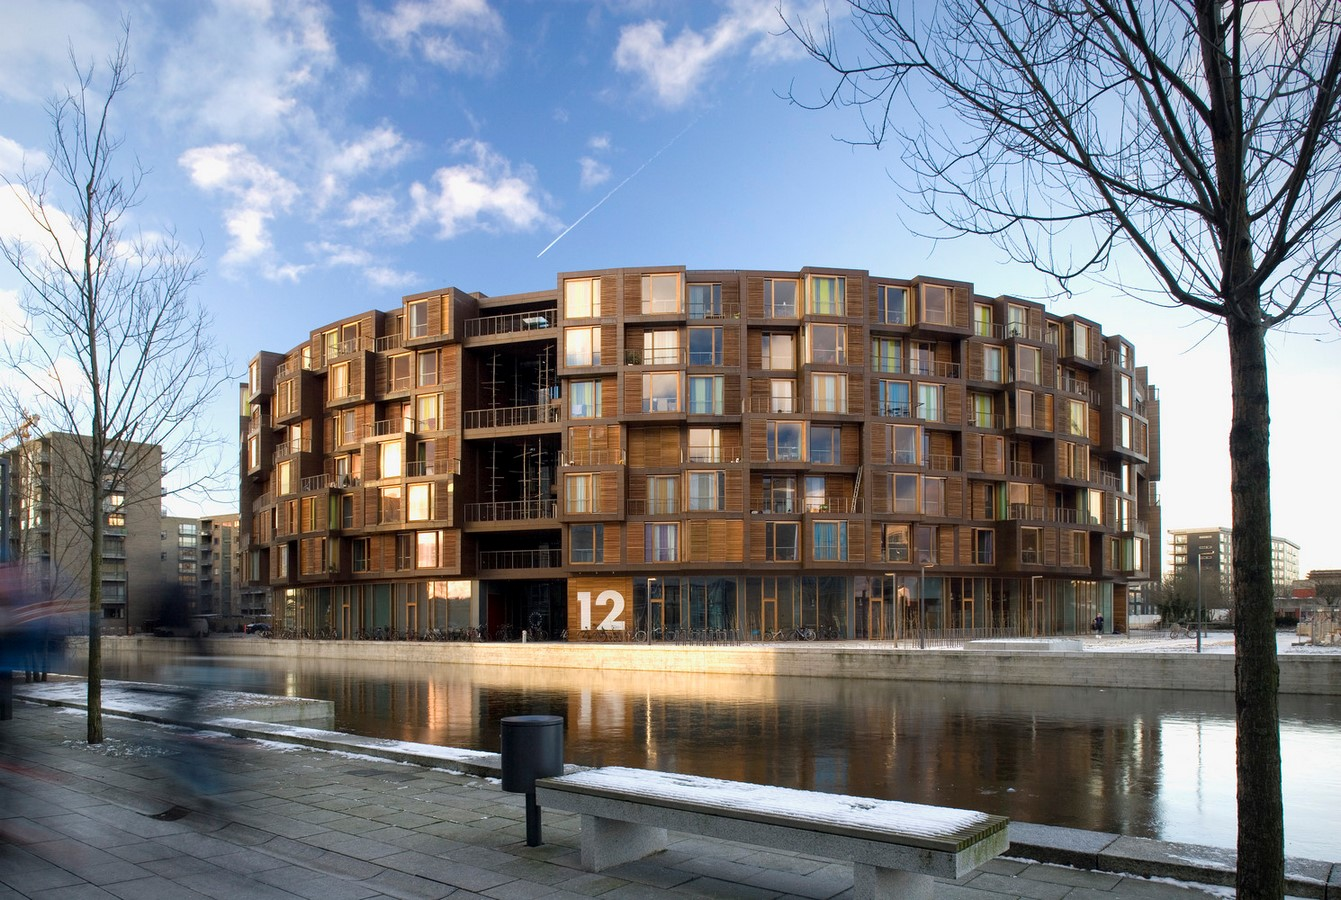 20 Examples of modern student housing - Sheet25